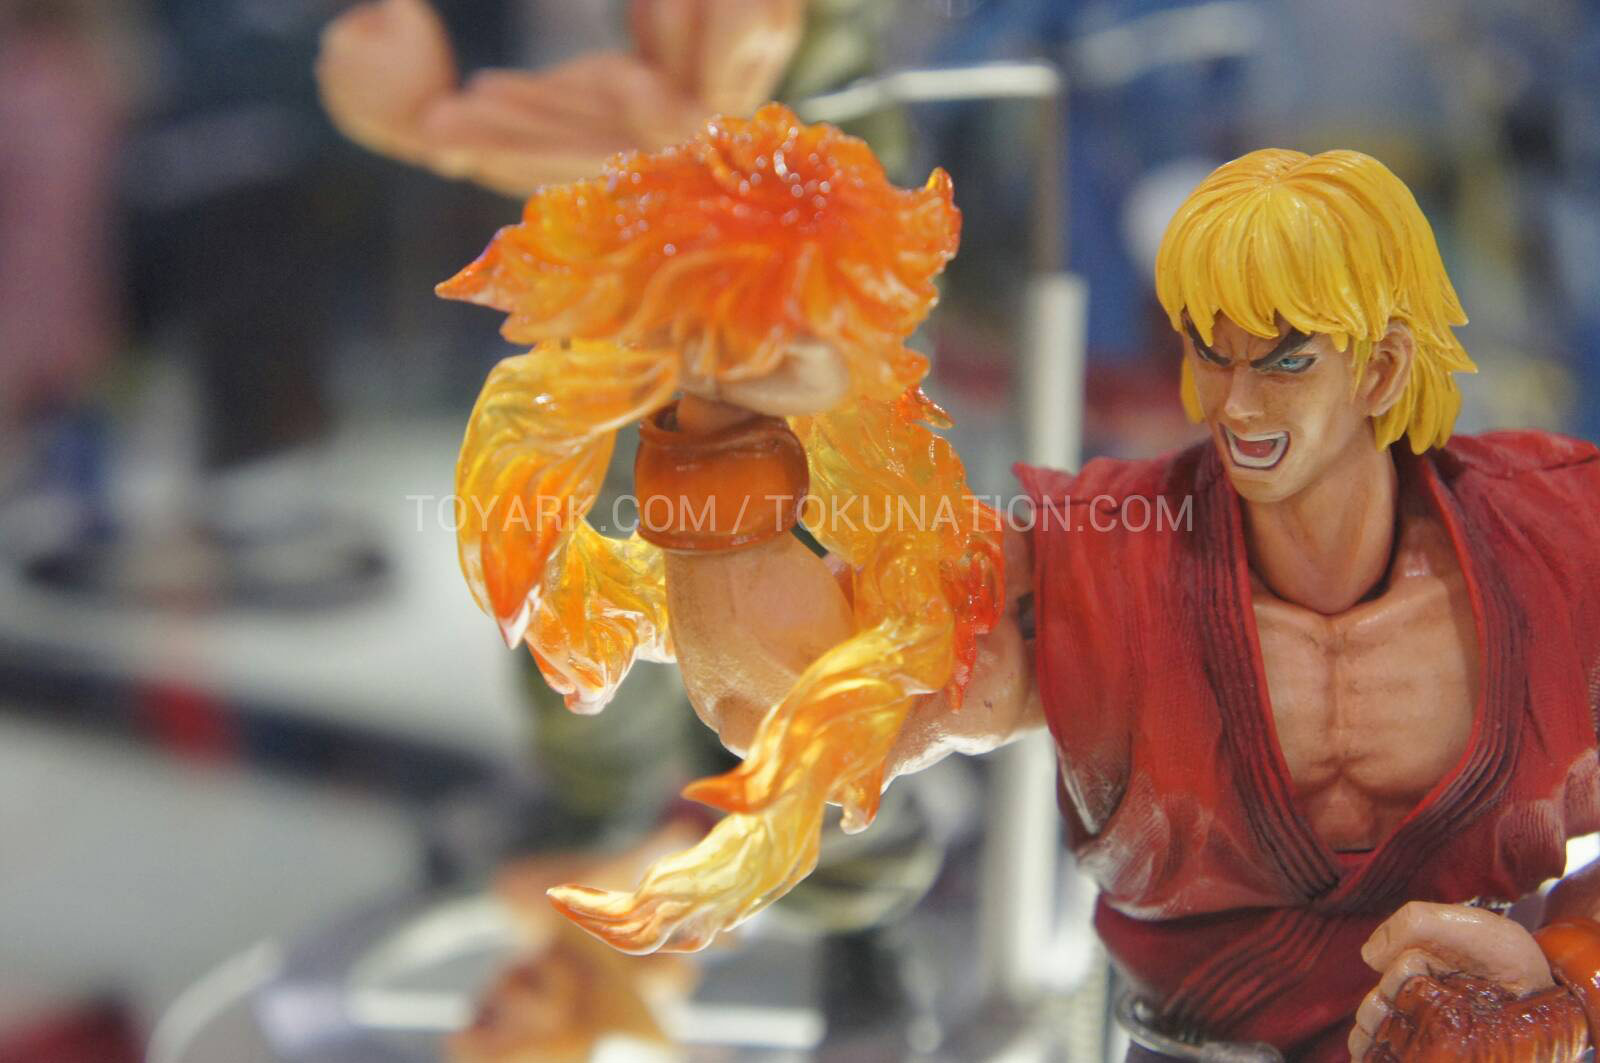 Play Arts Kai positionable figurines #02